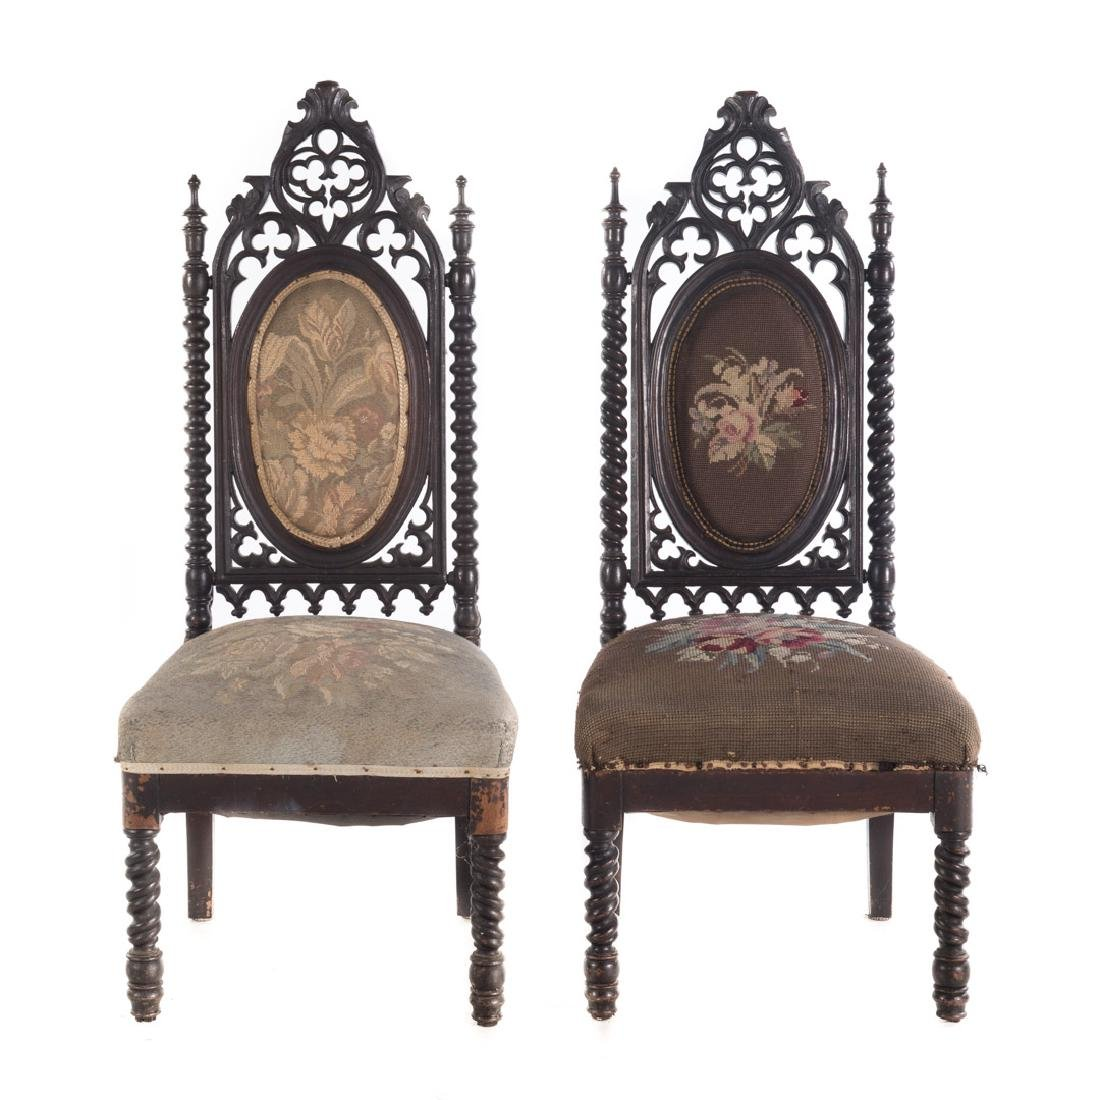 Pair of Gothic Revival walnut side chairs